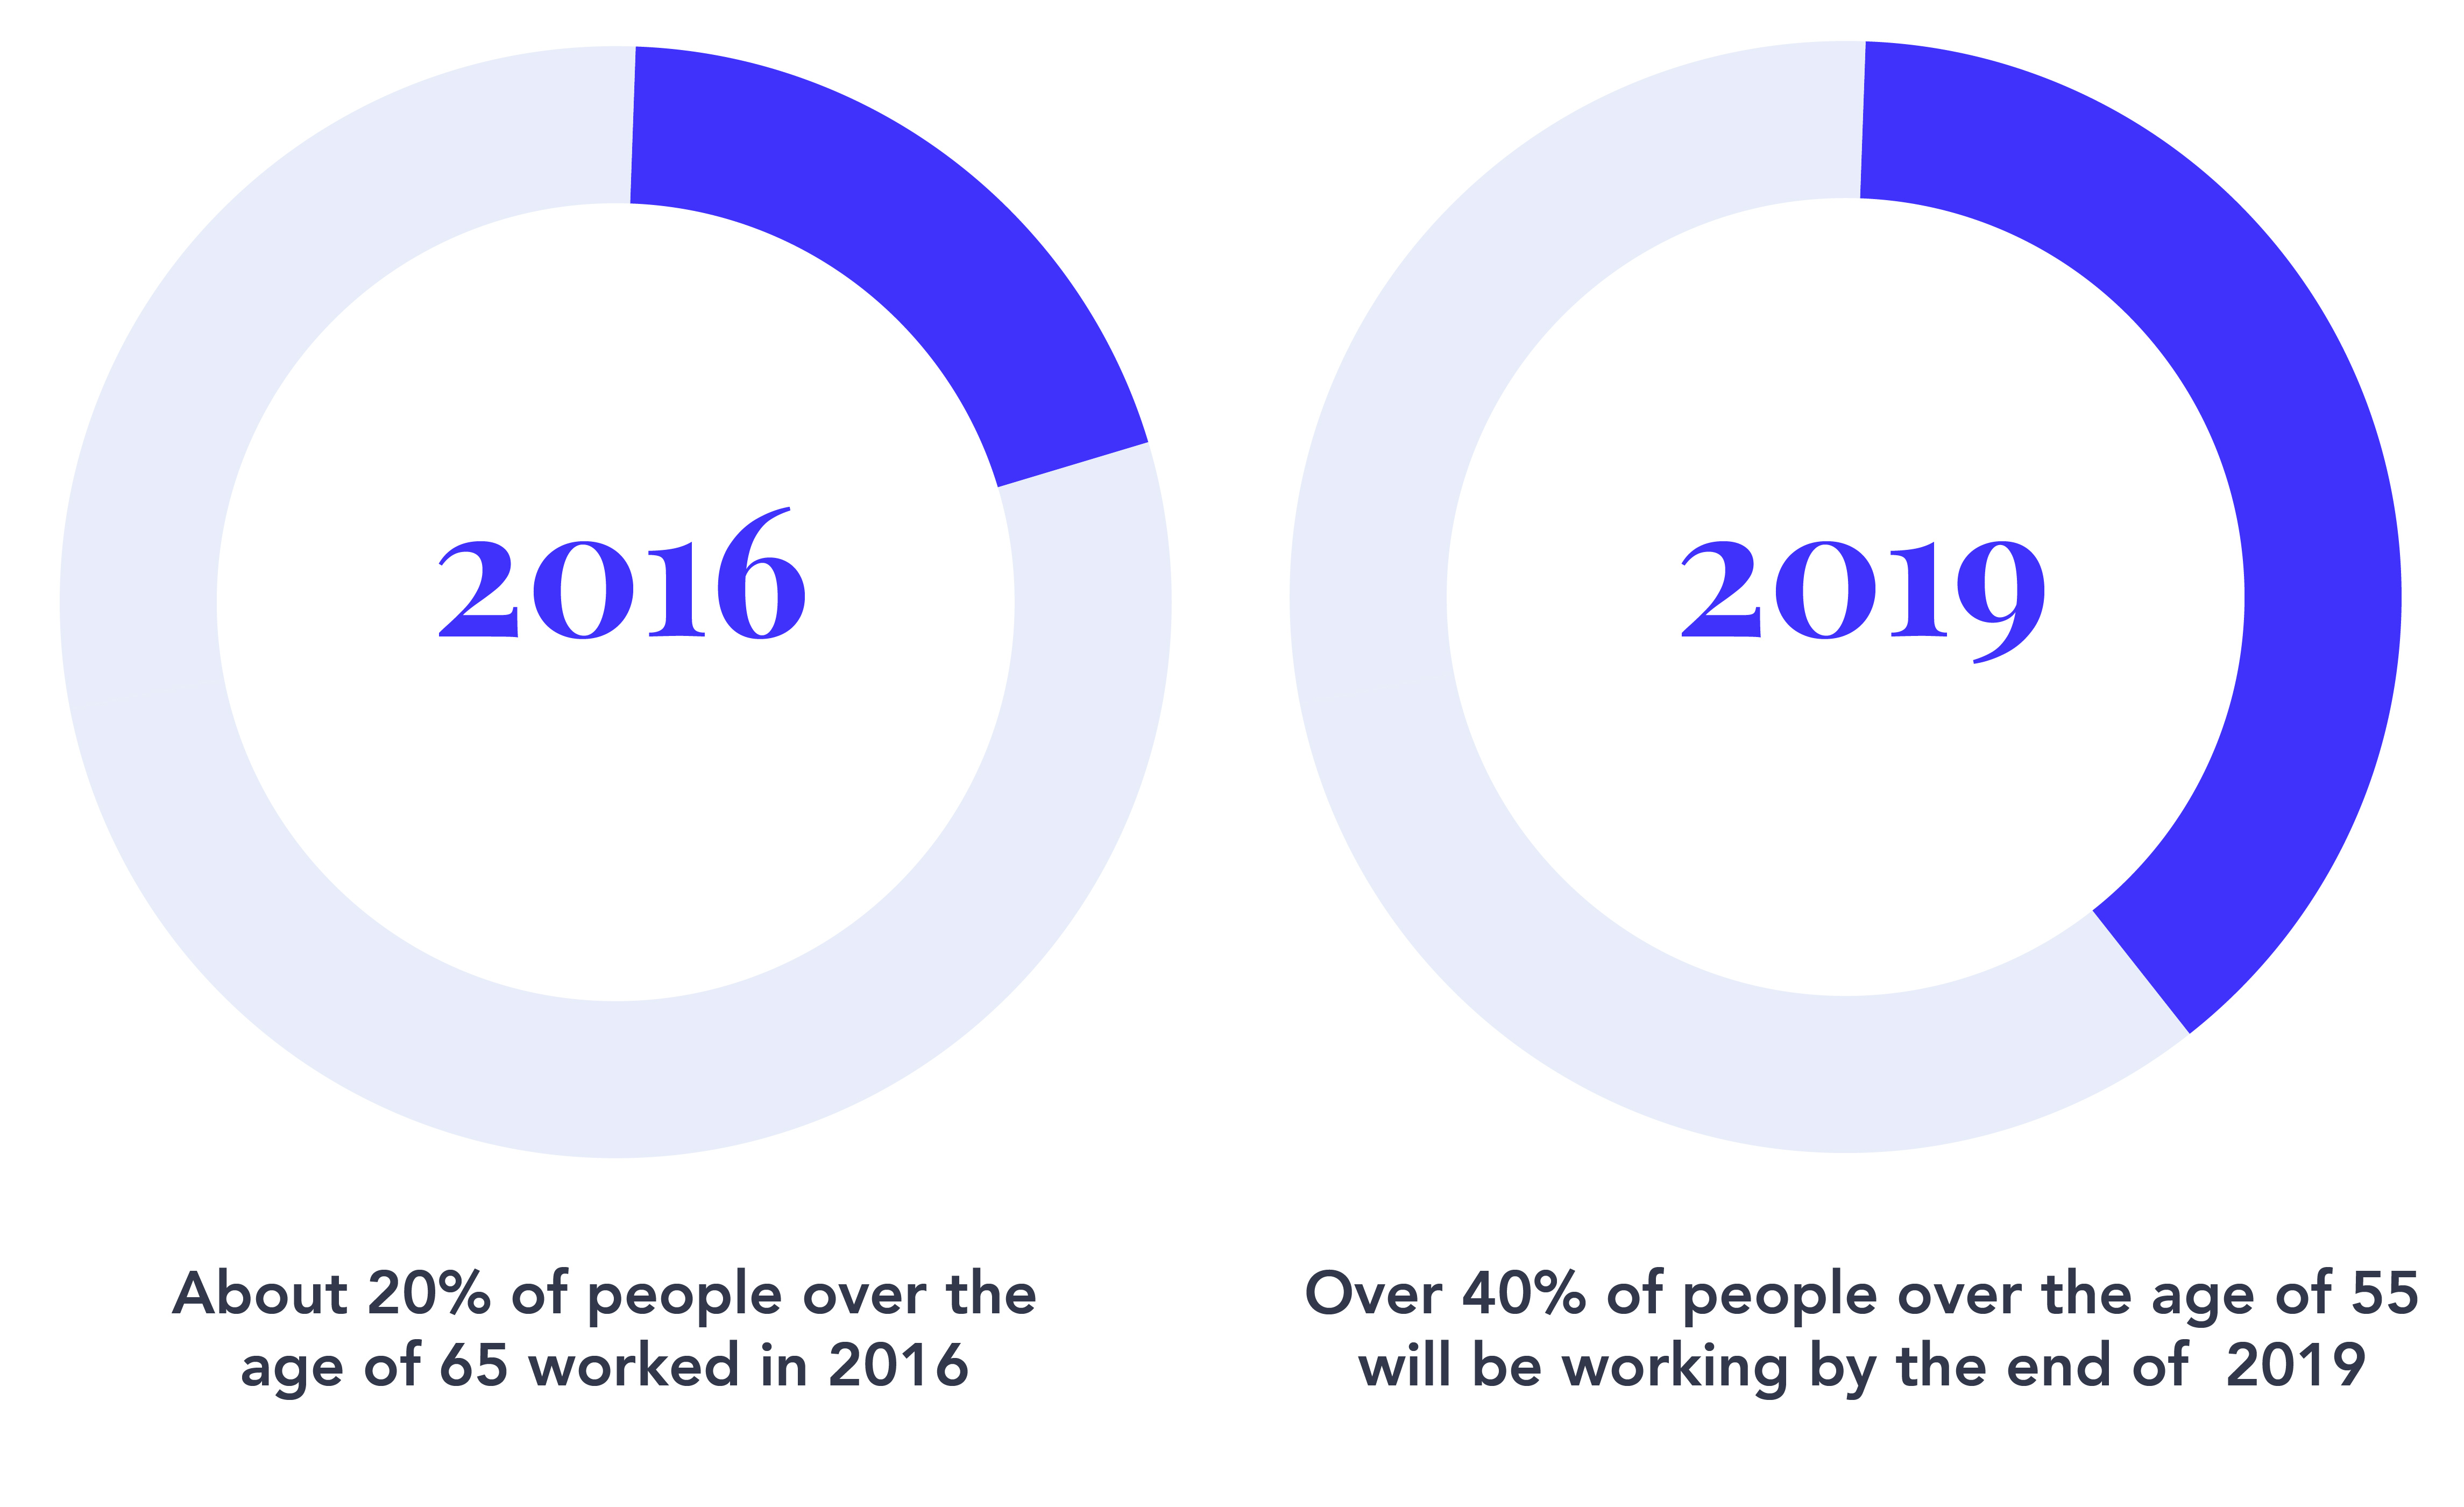 Percentage of people older than 55 who are or will be working